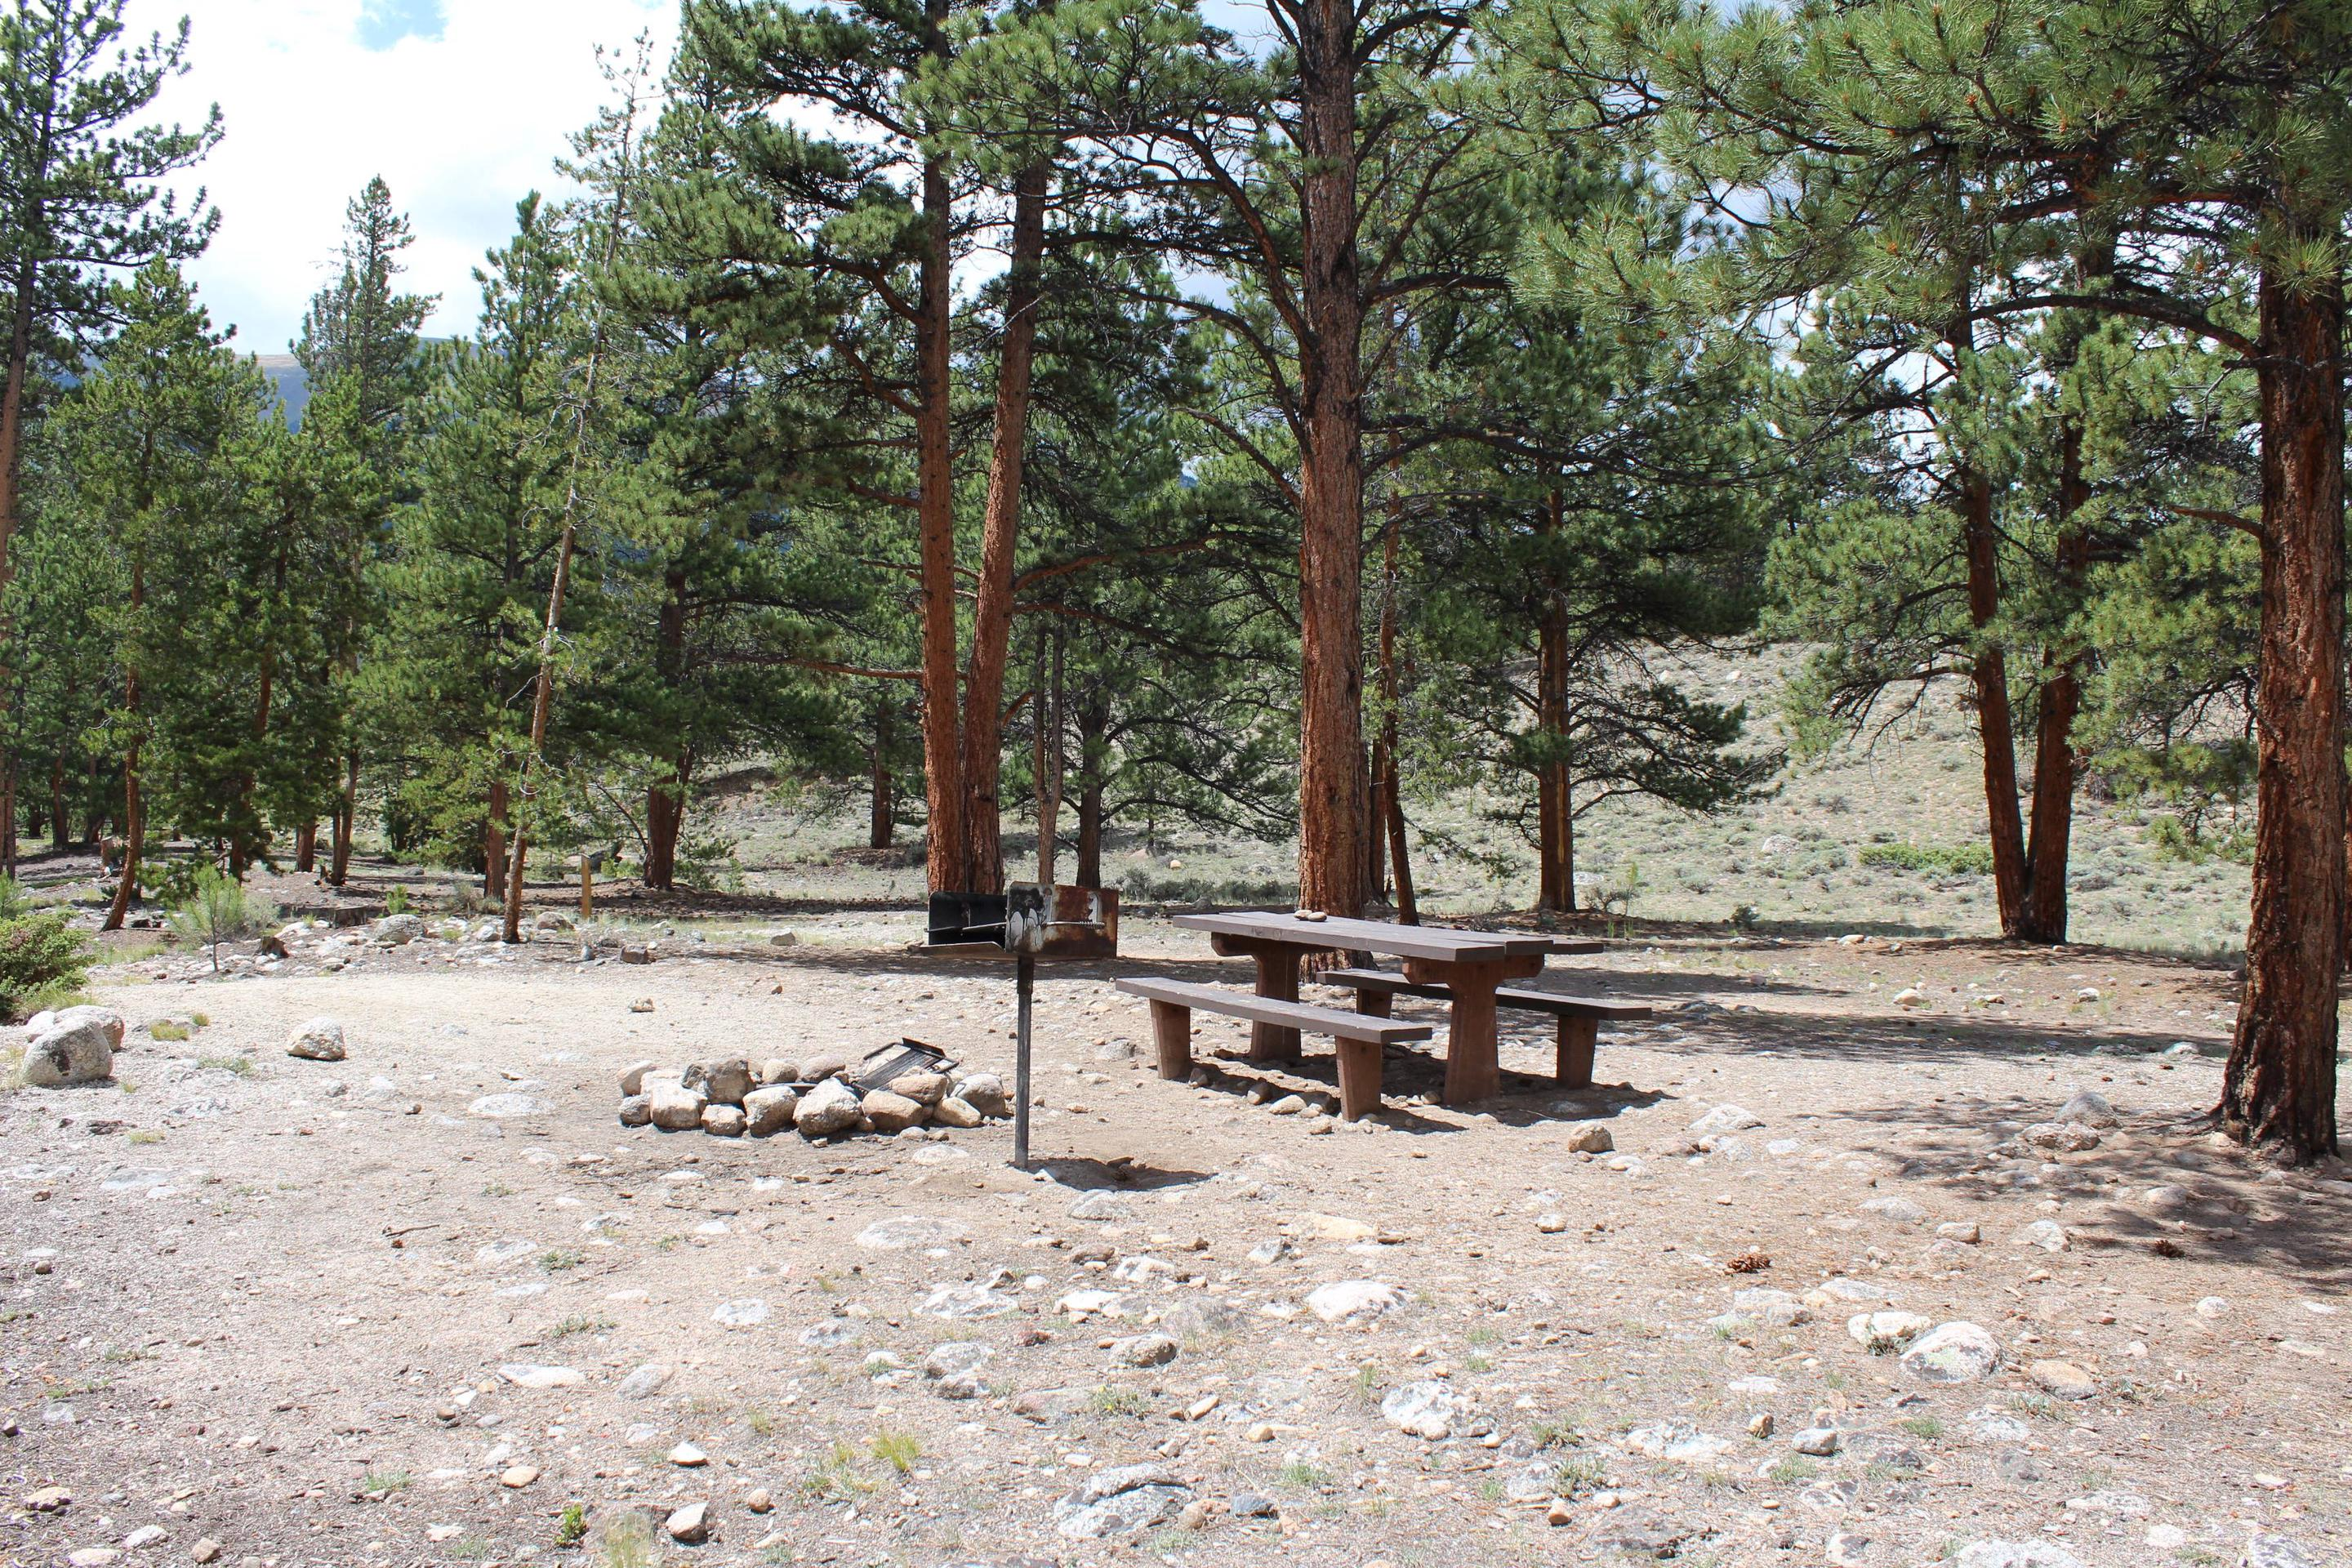 White Star Campground, site 64 picnic table and fire ring